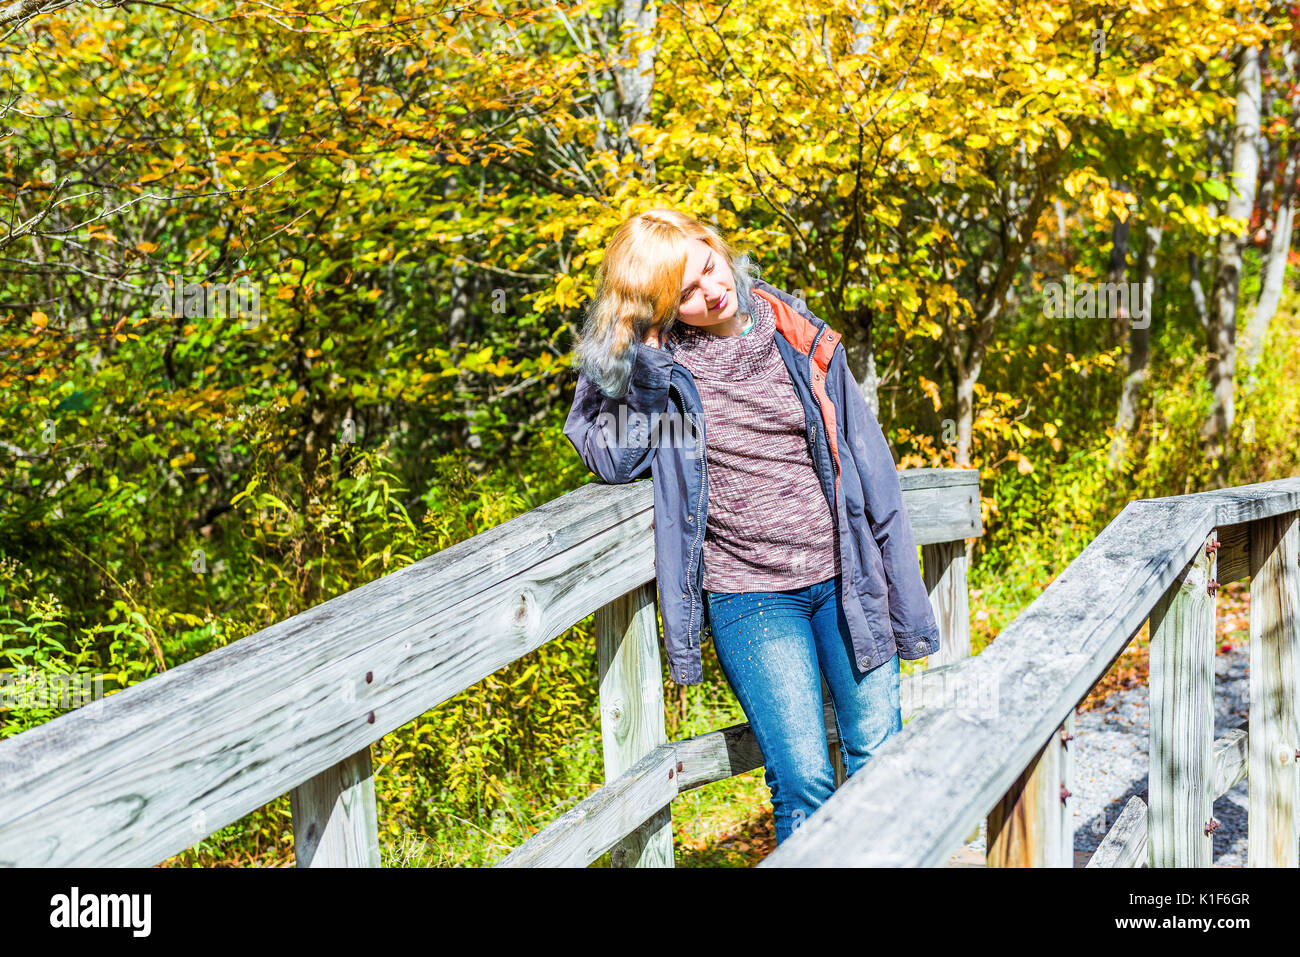 Young woman leaning on small wooden bridge in autumn smiling thinking Stock Photo